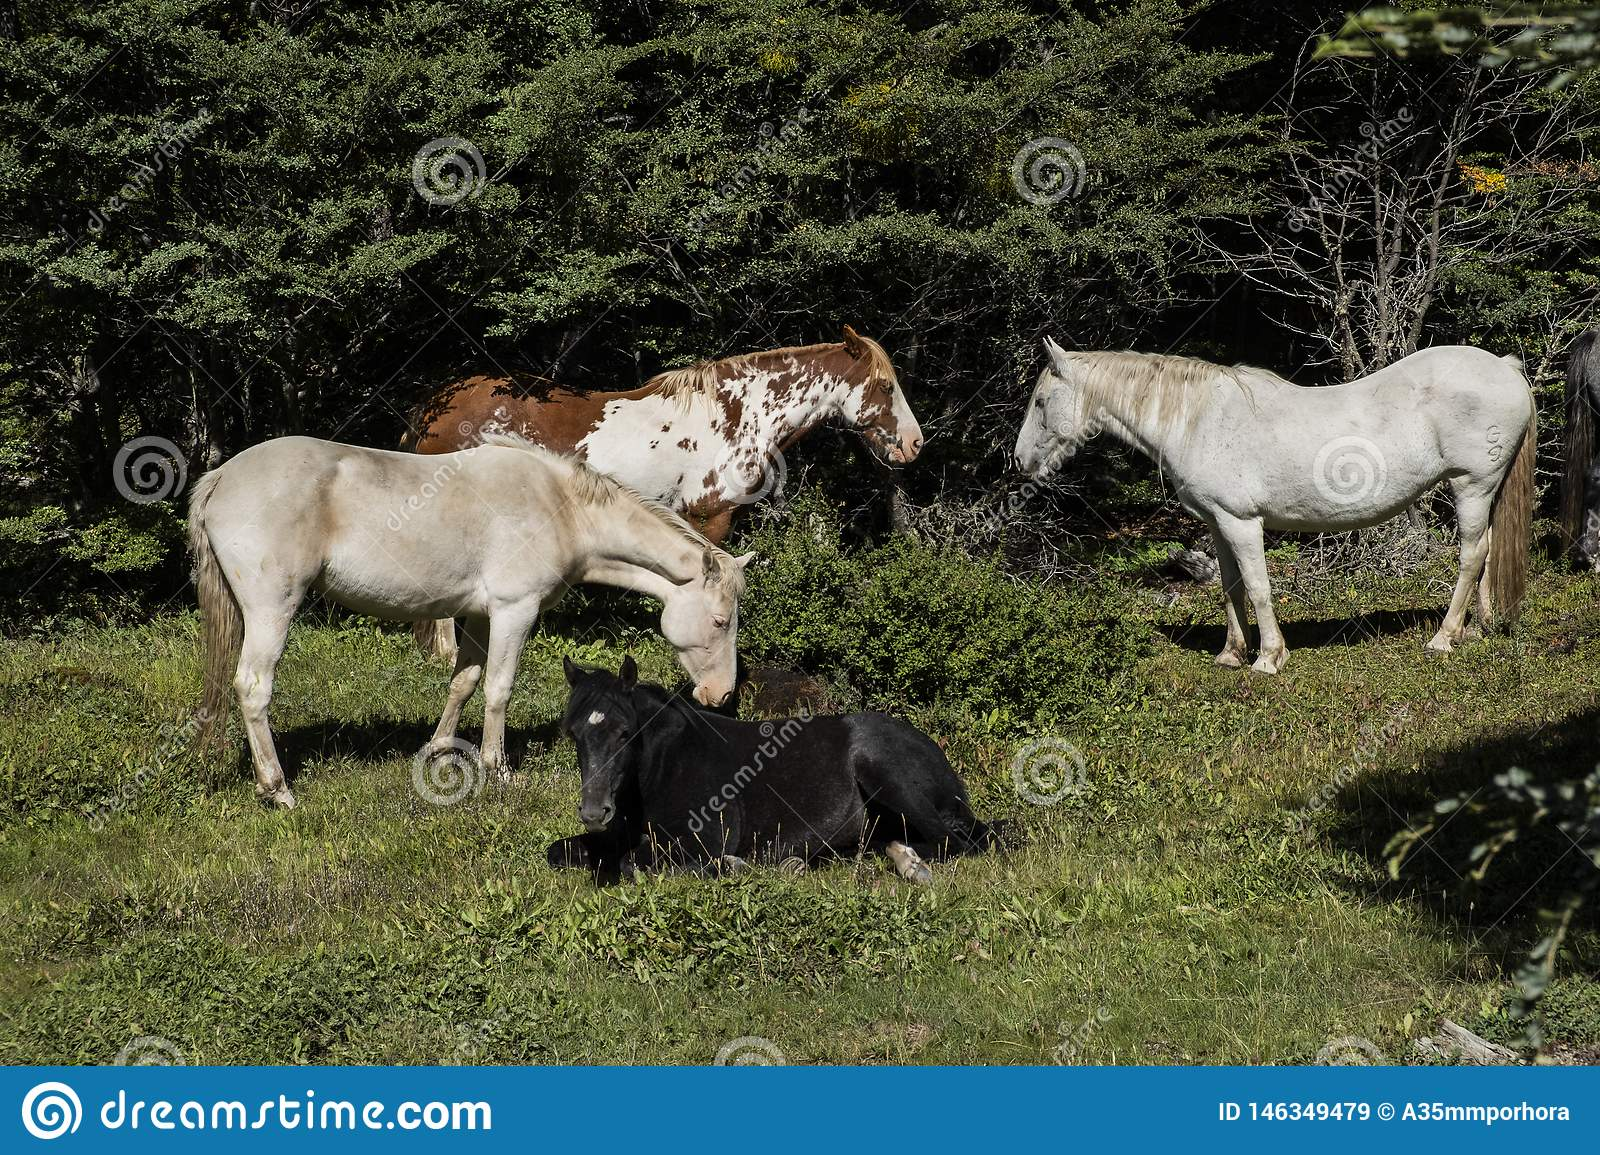 Horses on a farm in southern Patagonia. Argentina